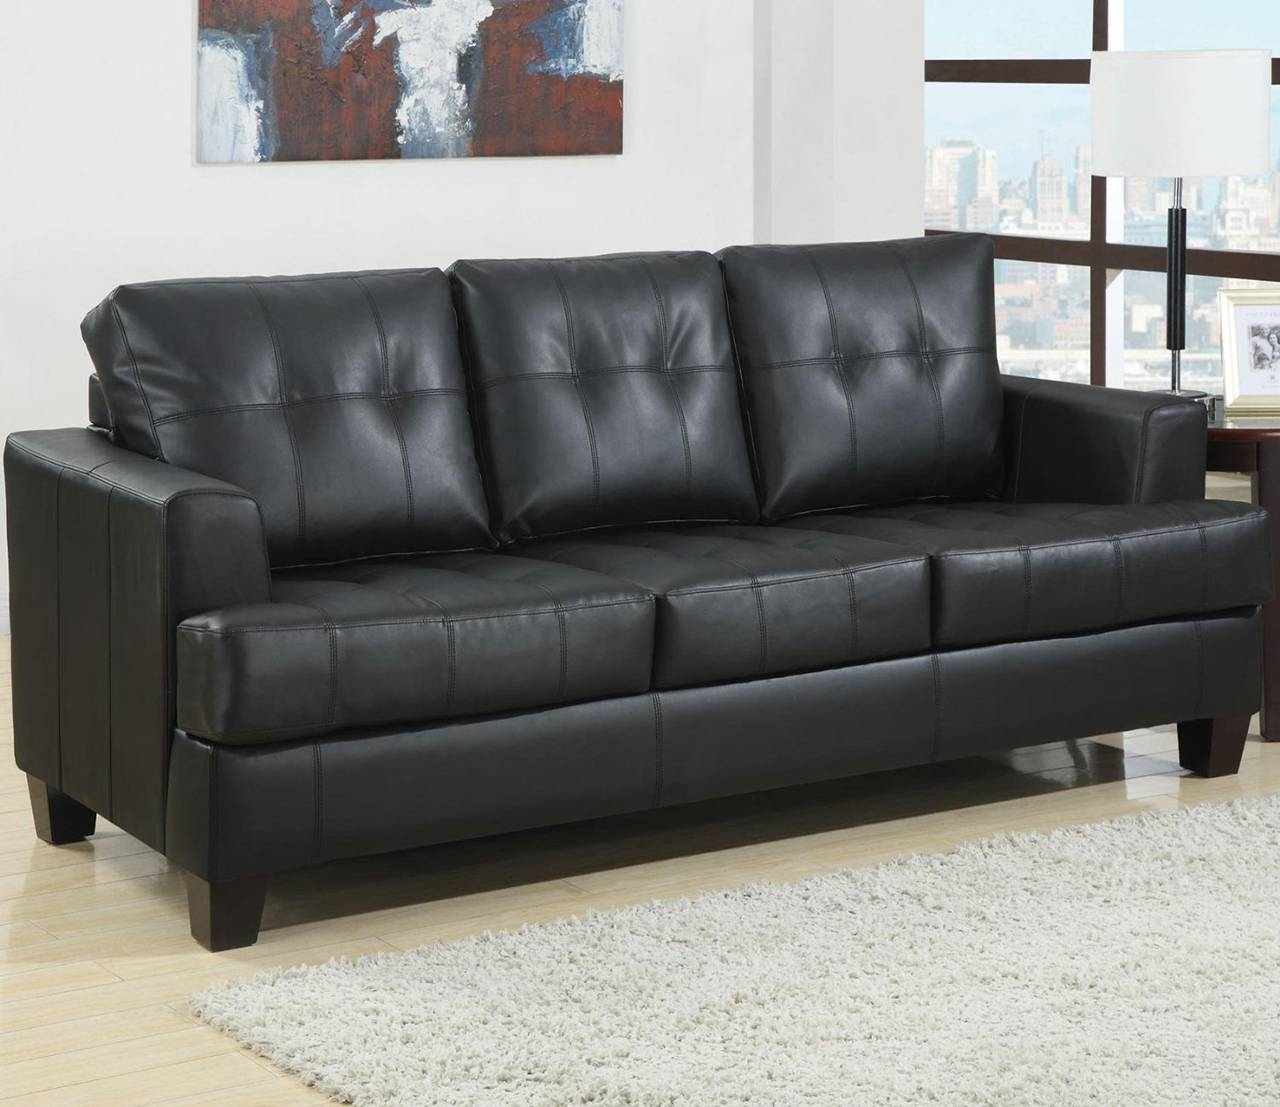 25 Best Sleeper Sofa Beds To Buy In 2017 pertaining to Red Sectional Sleeper Sofas (Image 3 of 30)